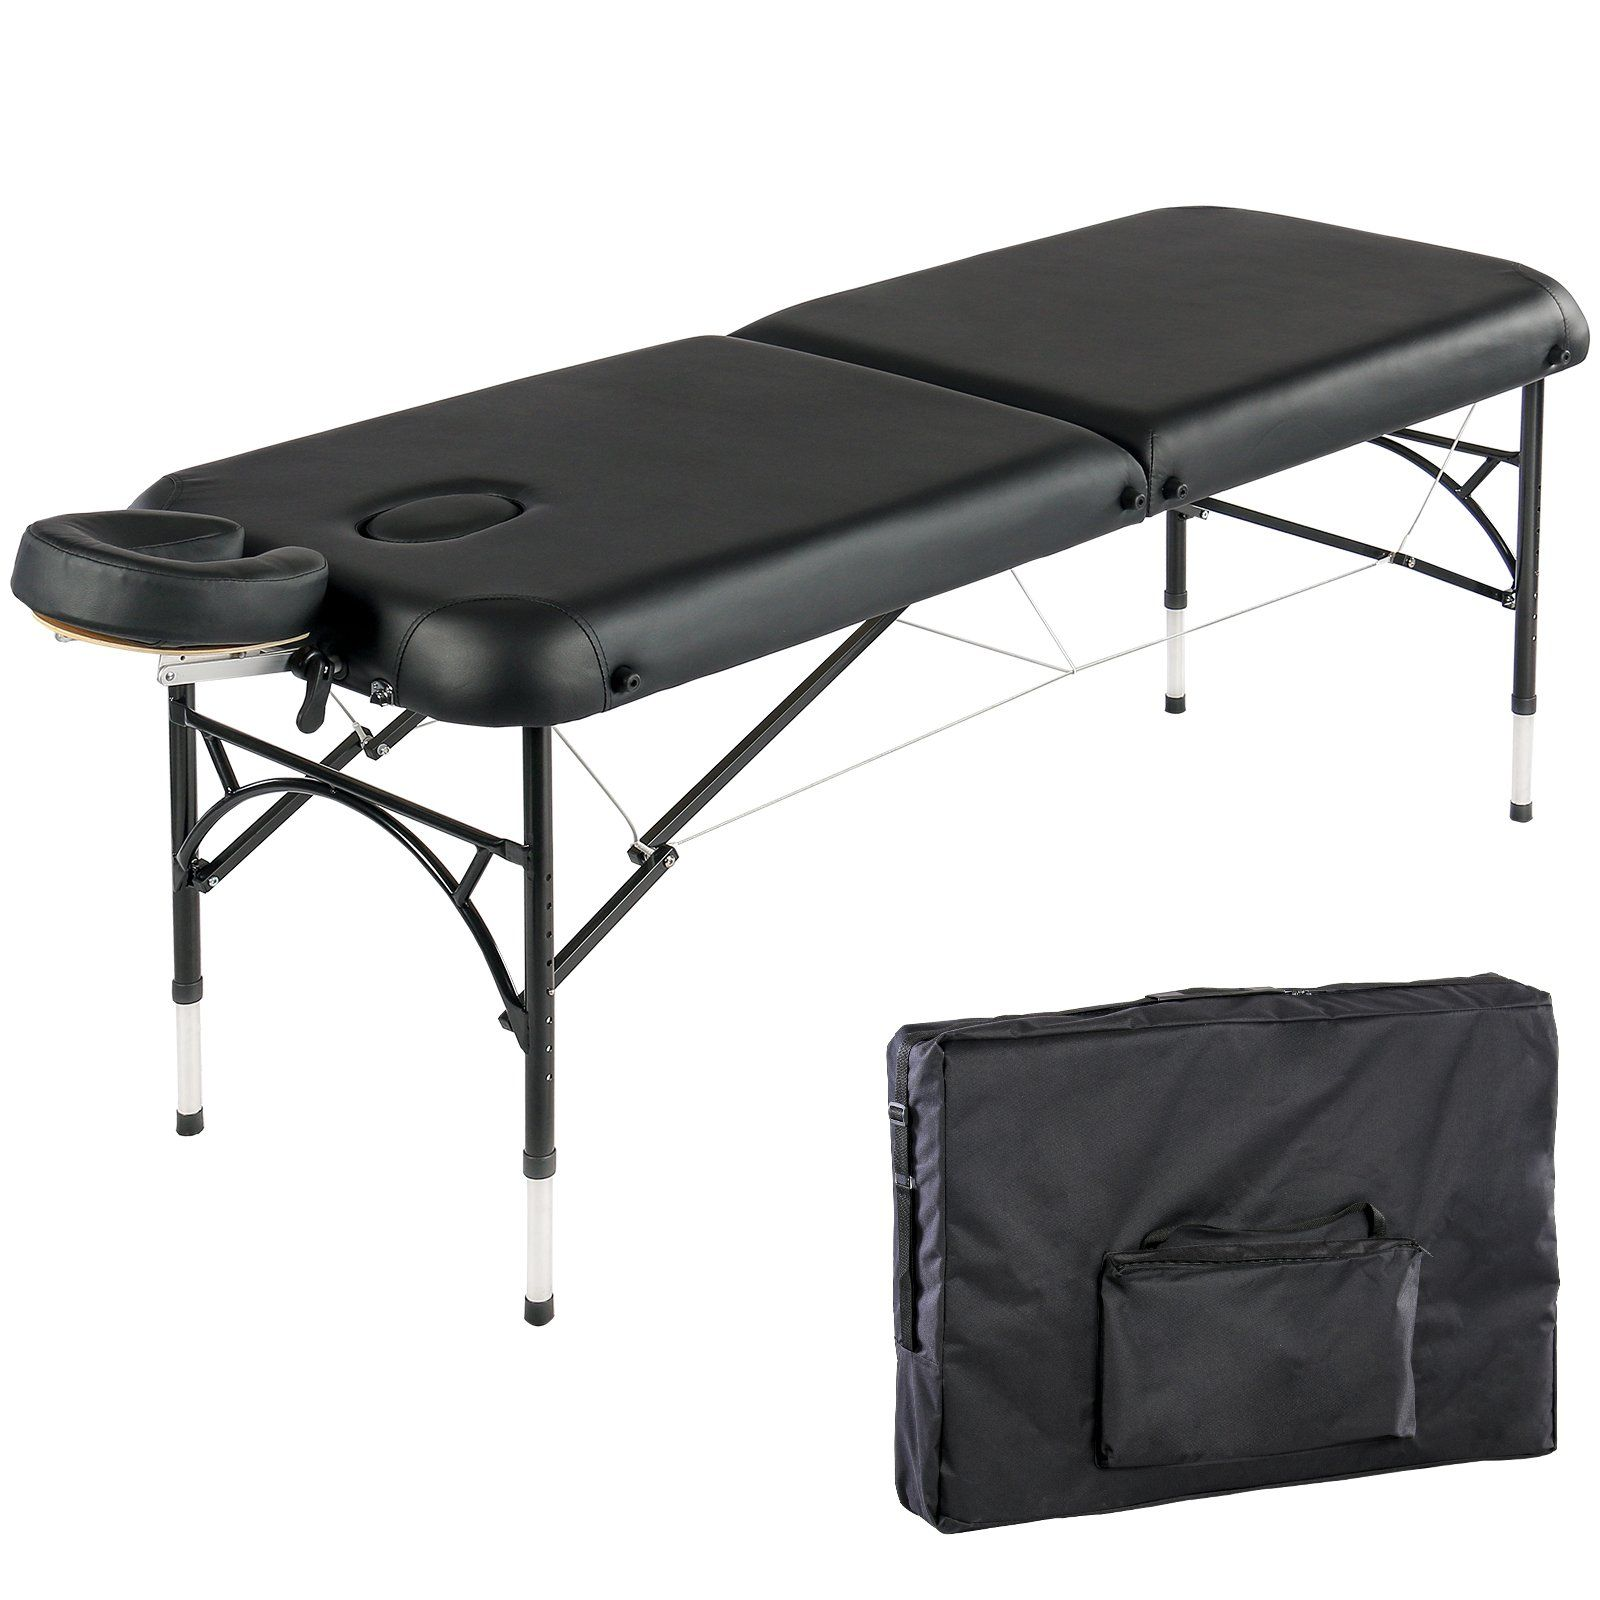 tattoo artist chair with back support